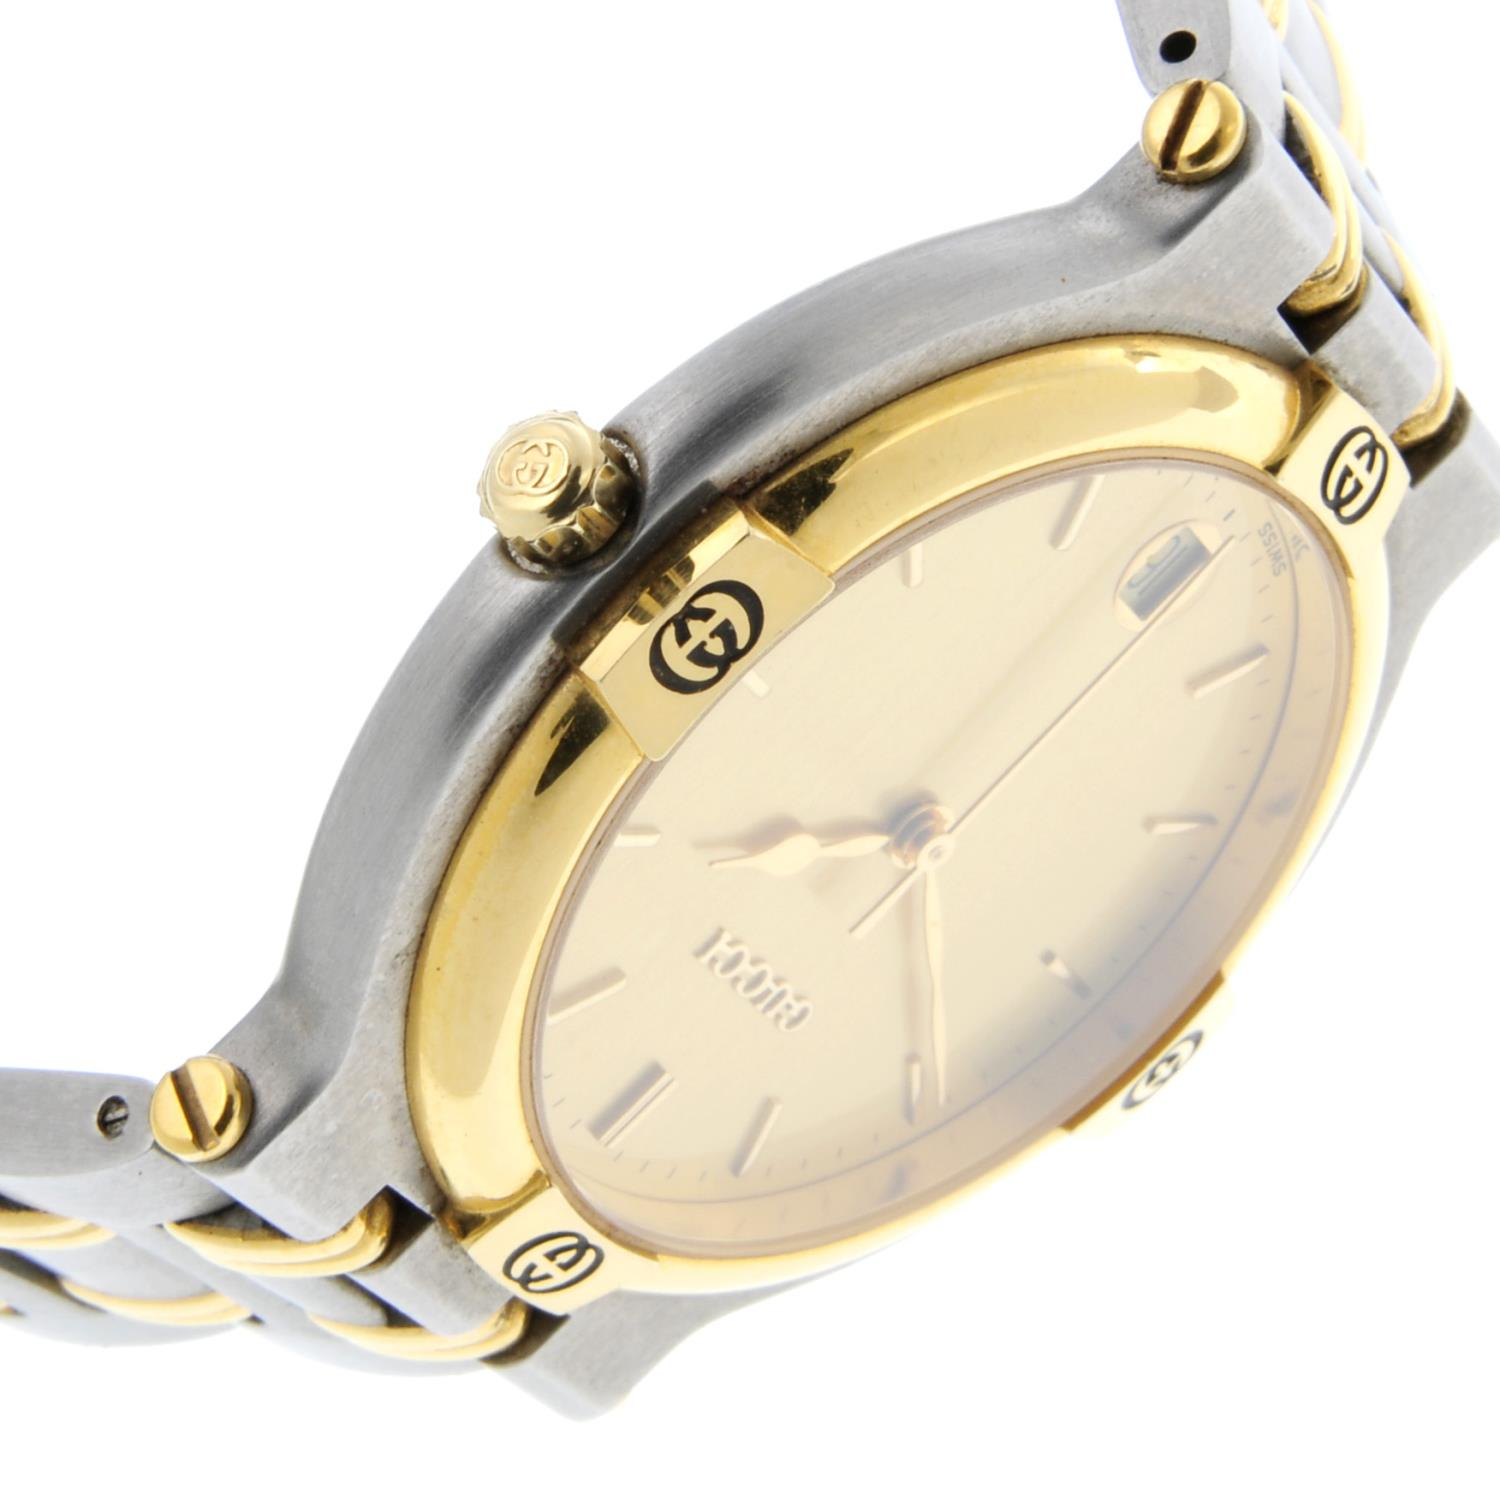 GUCCI - a mid-size 9000G bracelet watch. - Image 3 of 4